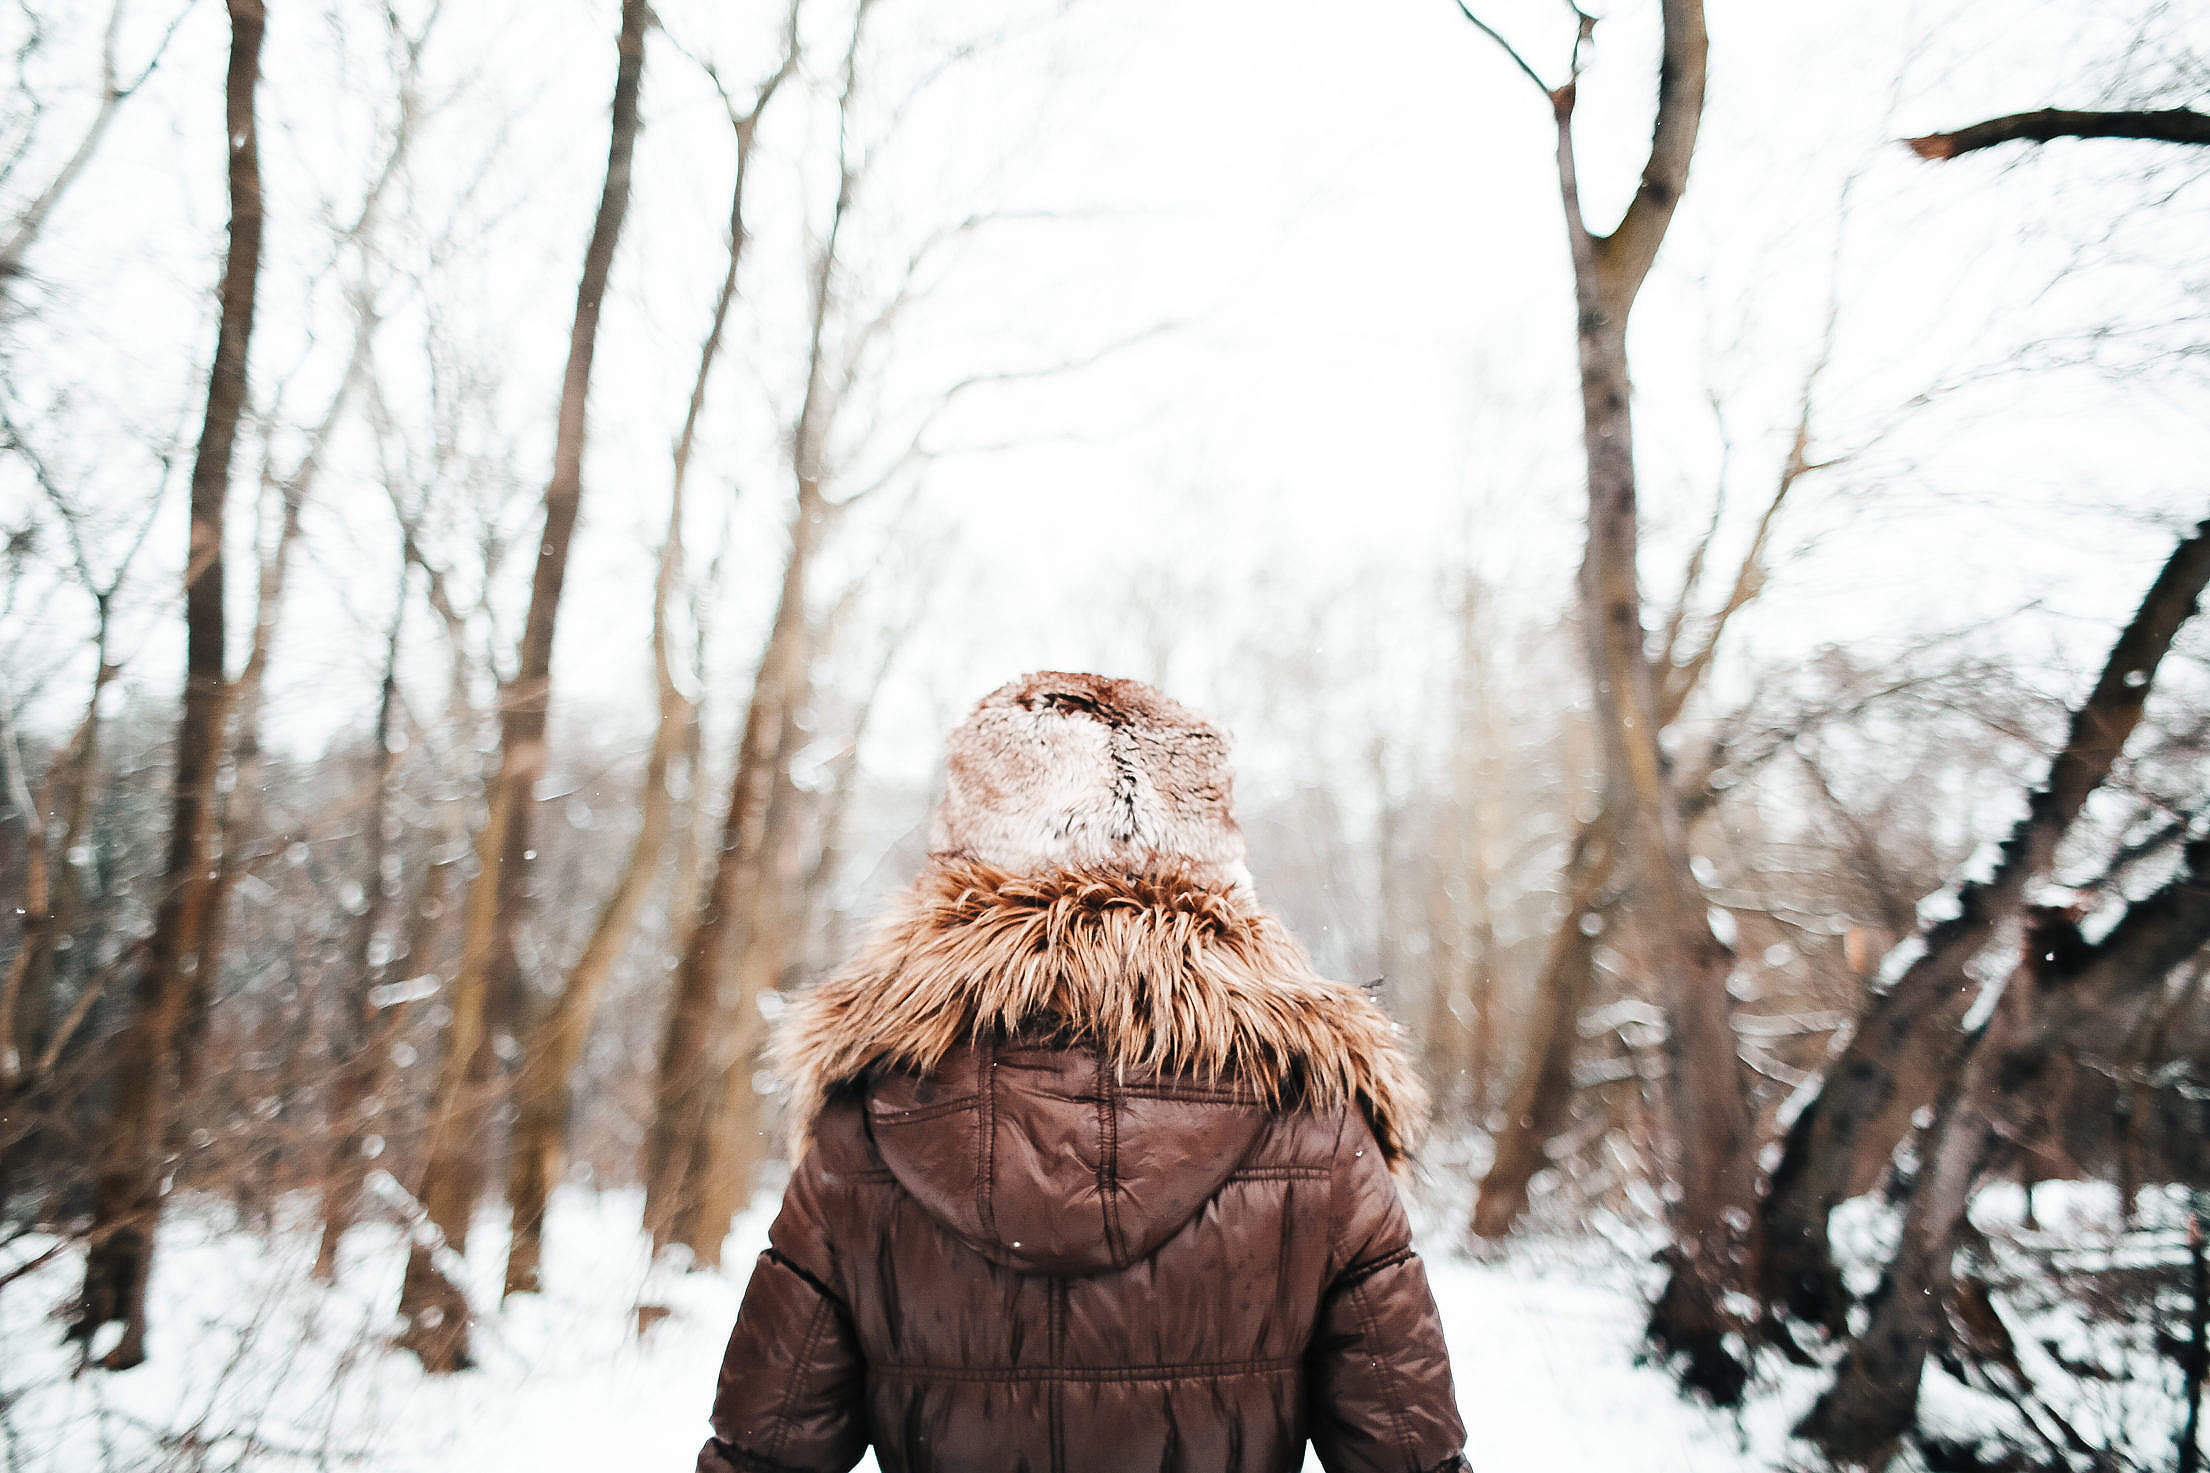 Girl Walking in Snowy Forest Free Stock Photo